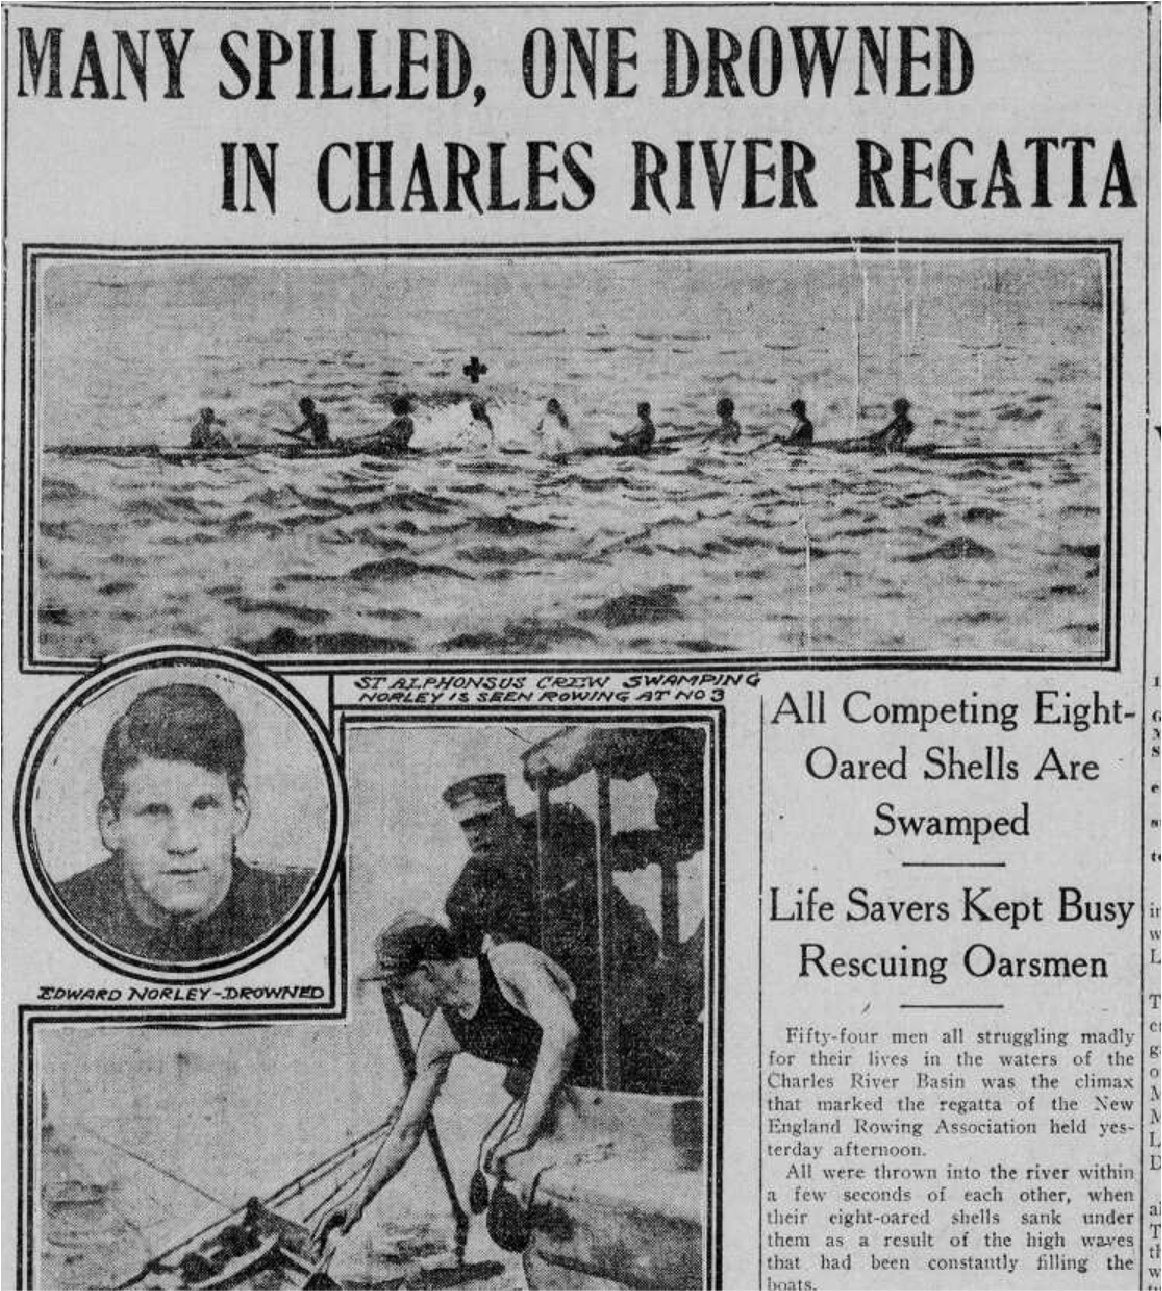 Boston Post front page, July 6, 1909